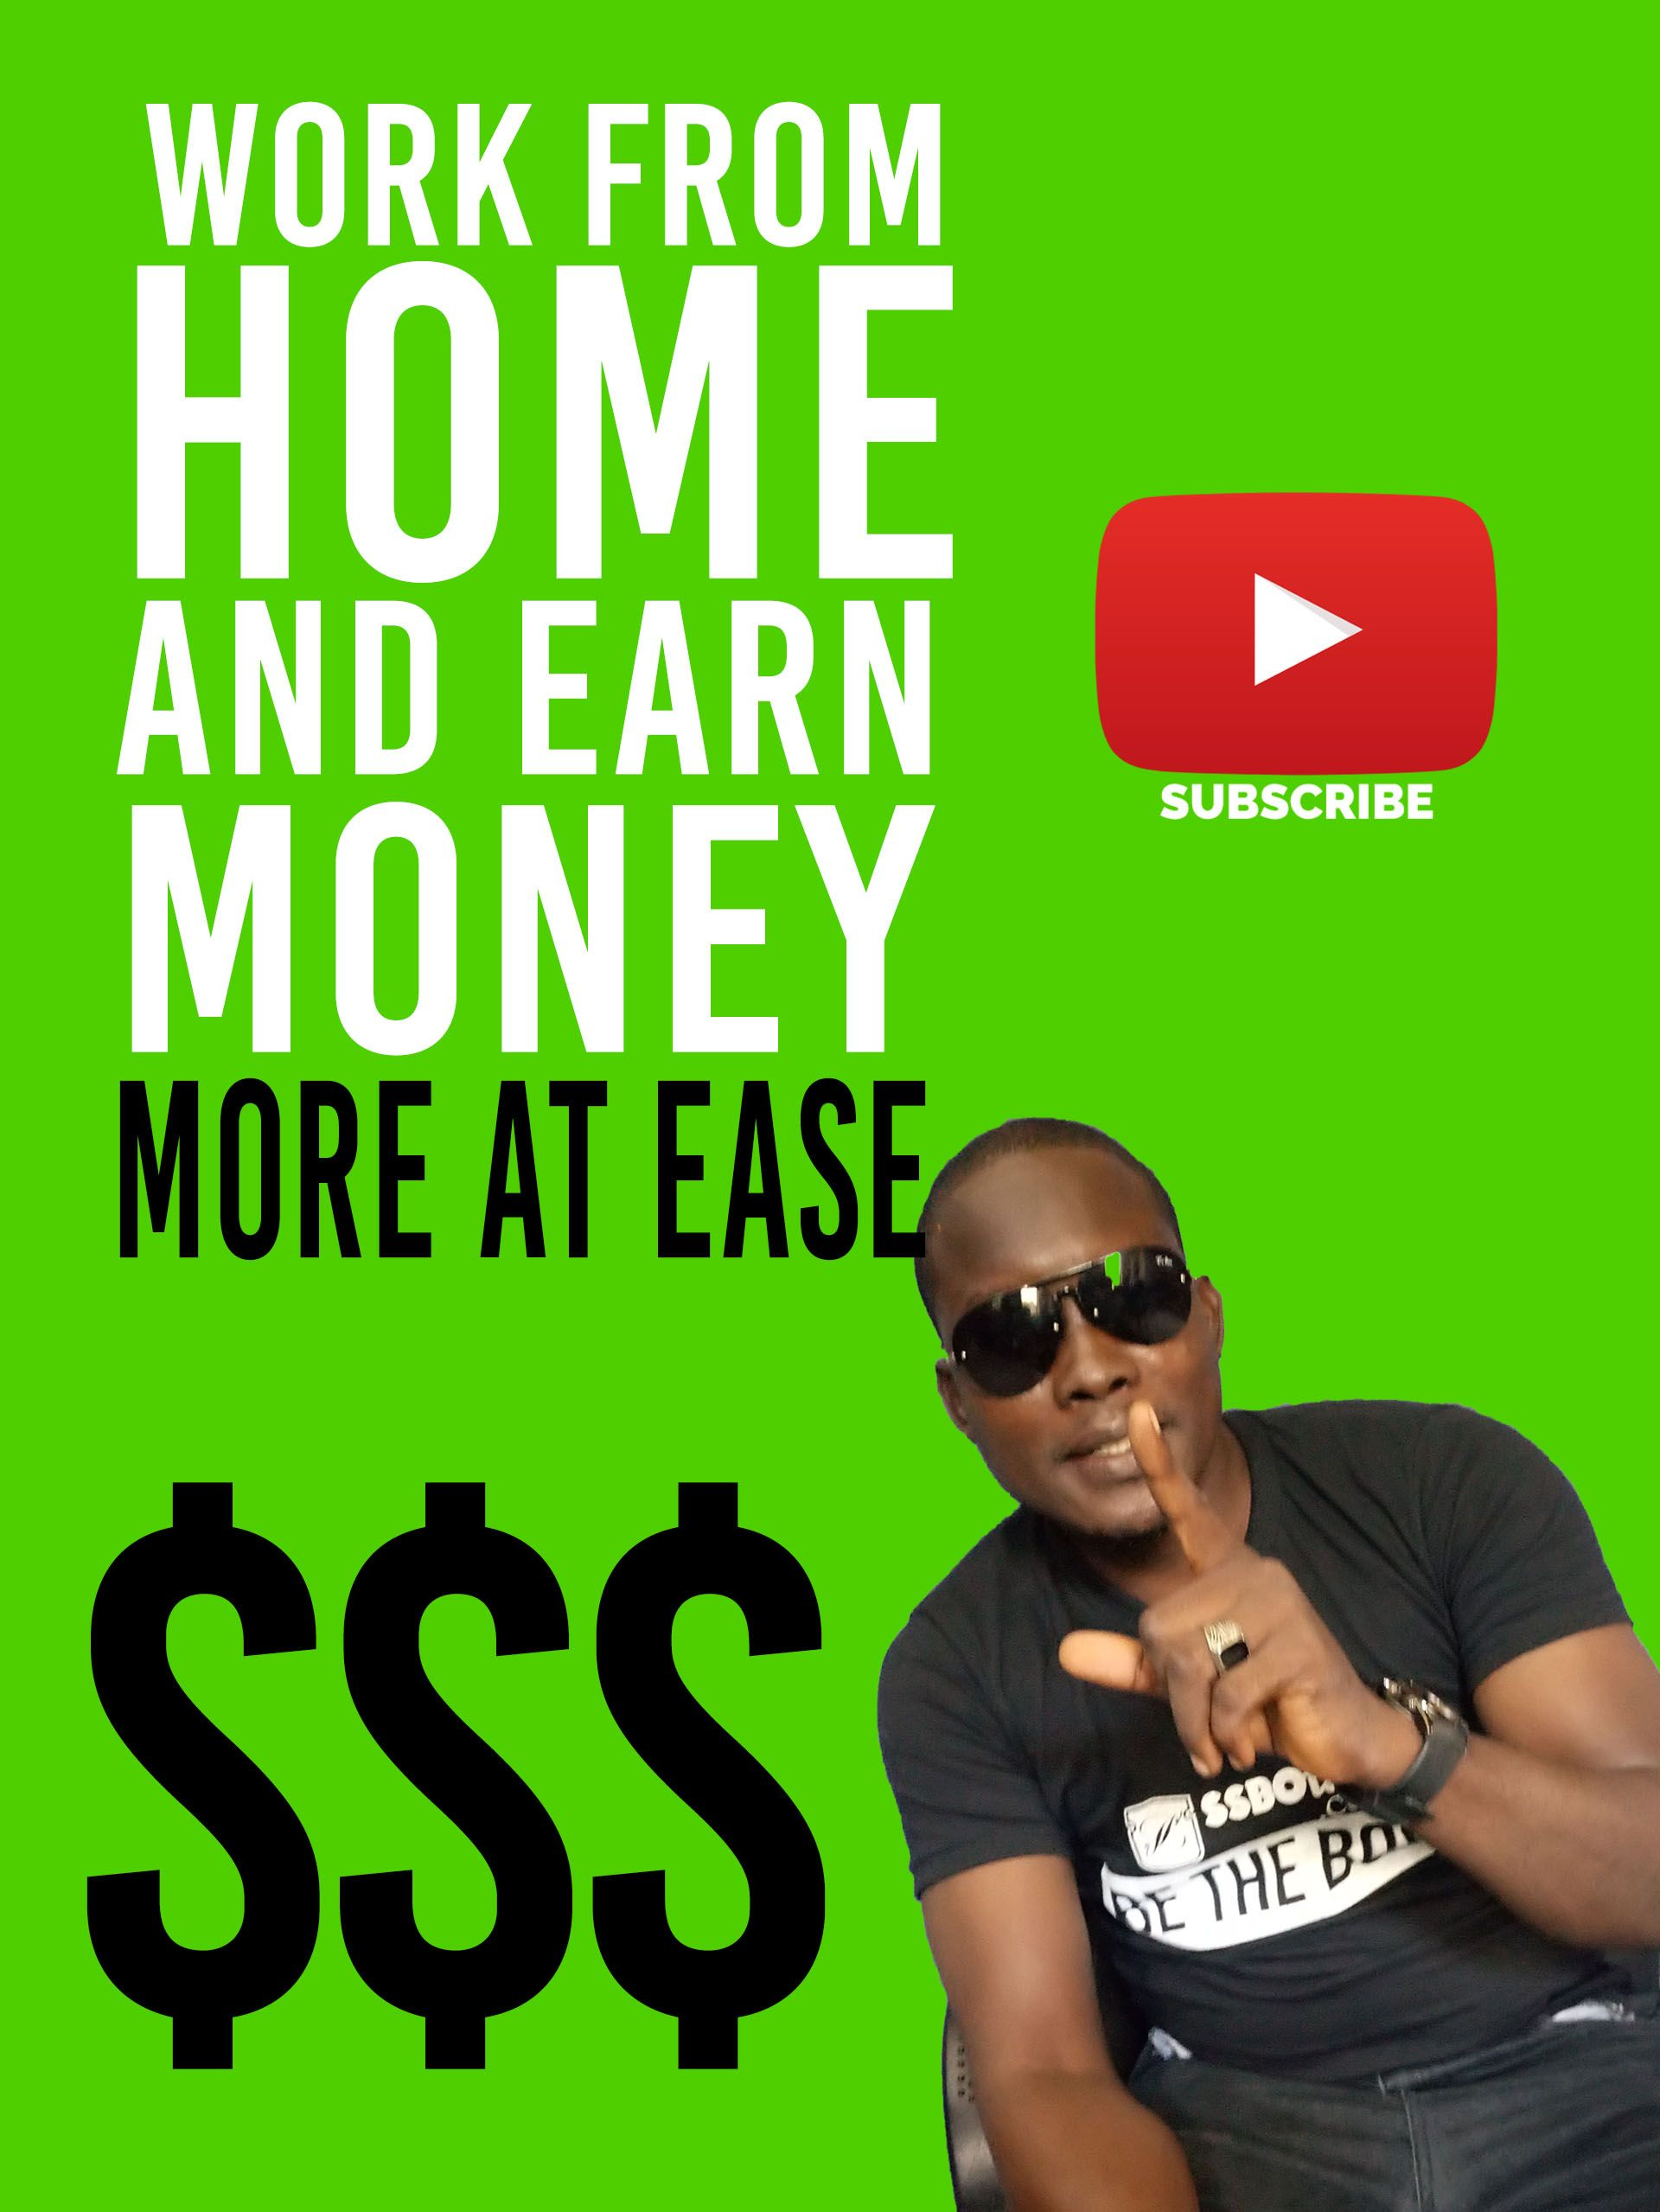 Work From Home And Earn Money At Ease As A Music Producer